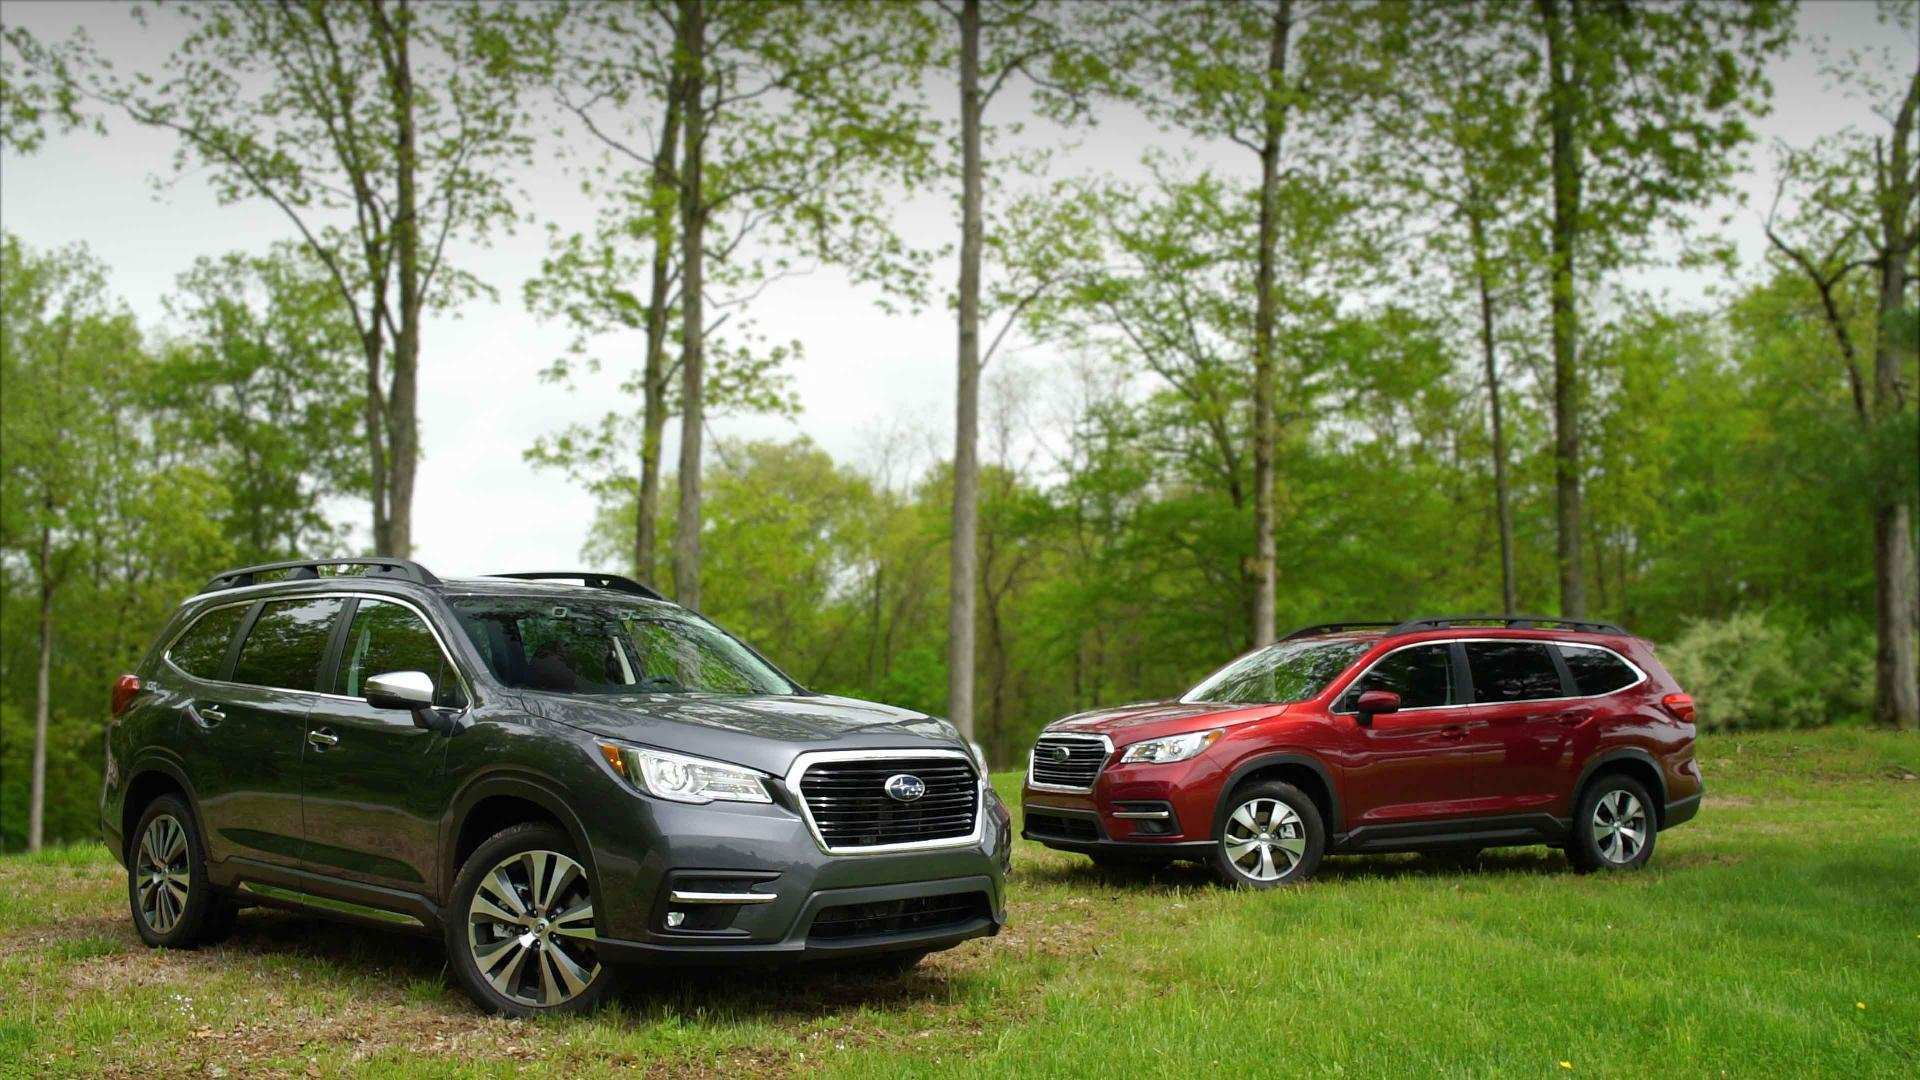 27 Best Review 2019 Subaru Ascent Video First Drive by 2019 Subaru Ascent Video